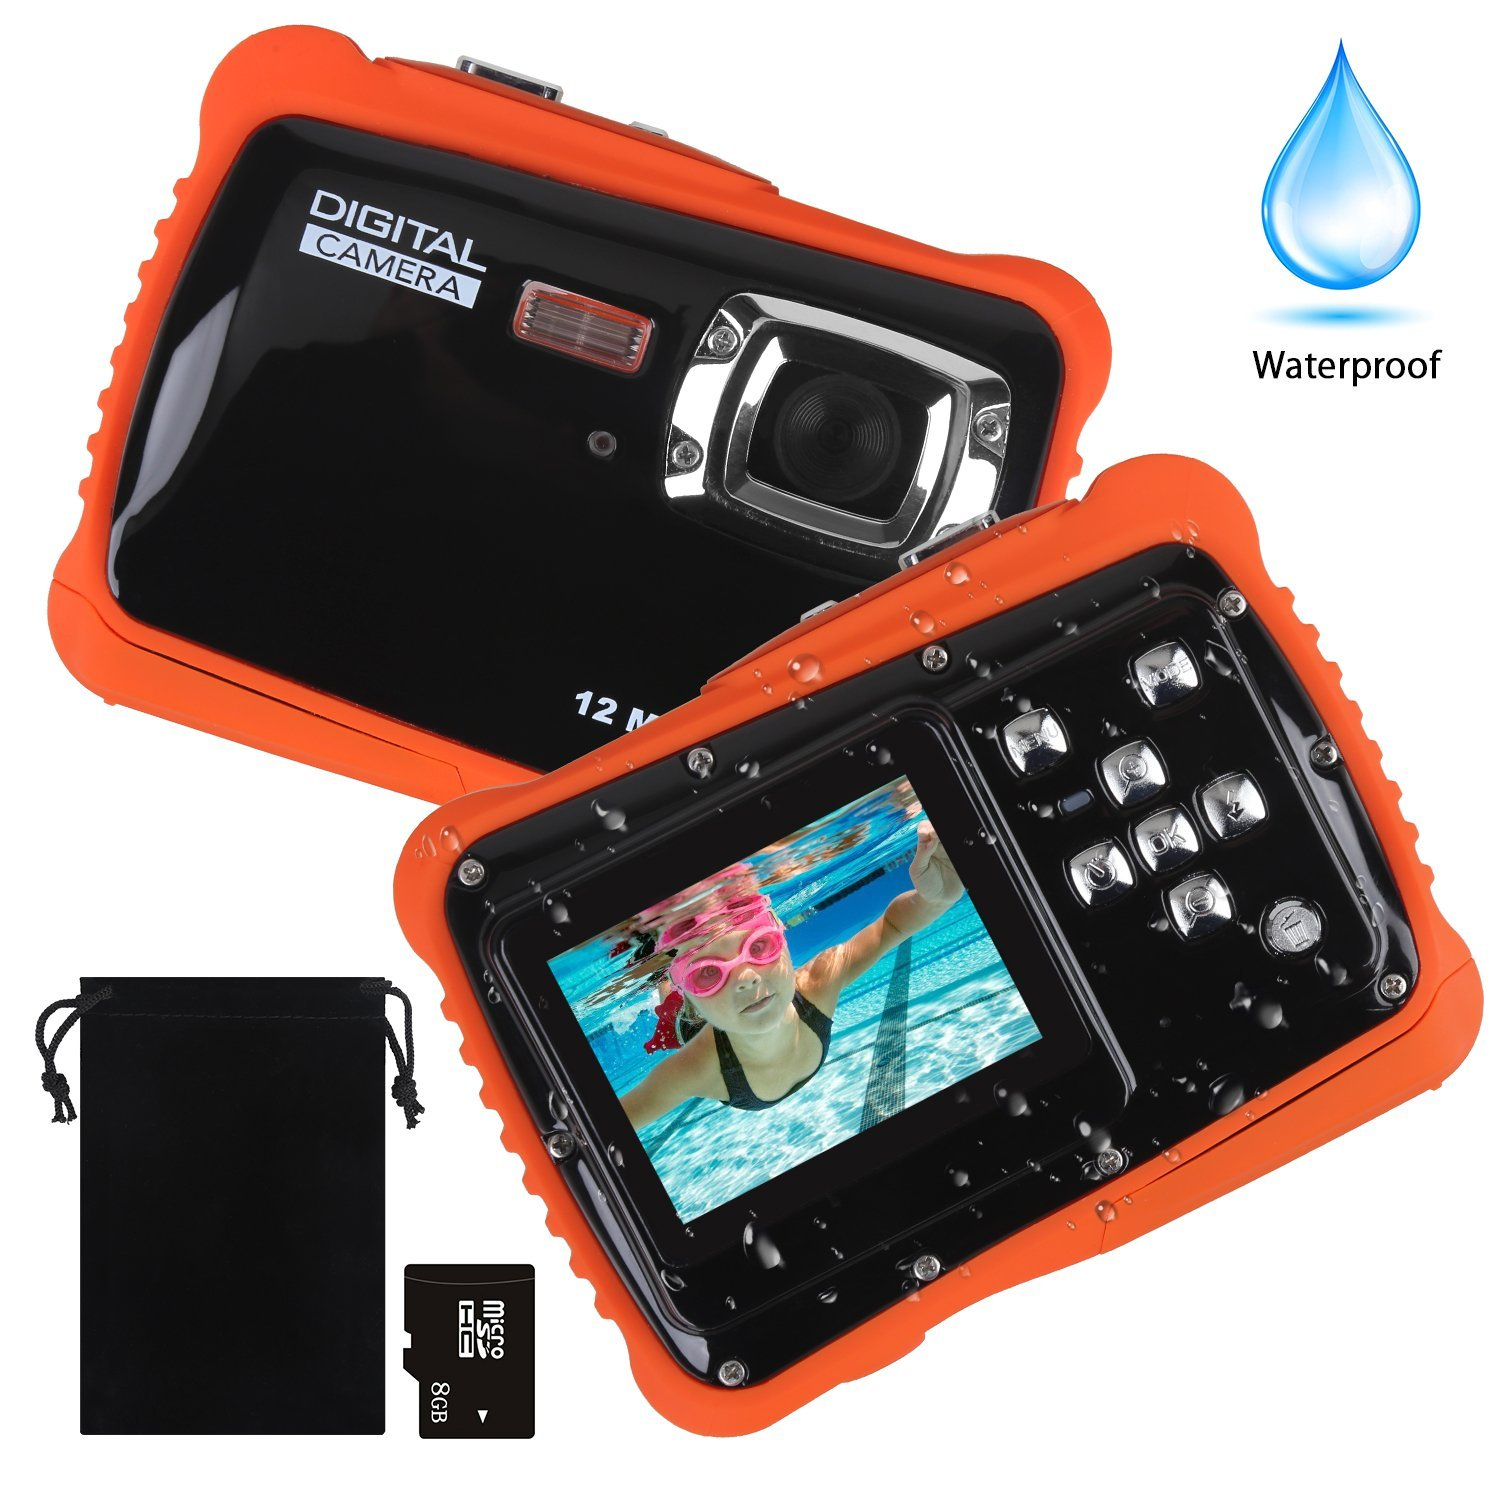 Kids Waterproof Camera, DECOMEN Digital Underwater Camera for Boys and Girls, 12MP HD Action Sport Camcorder with 2.0'' LCD, 8x Digital Zoom, Flash, Mic and 8G SD Card.